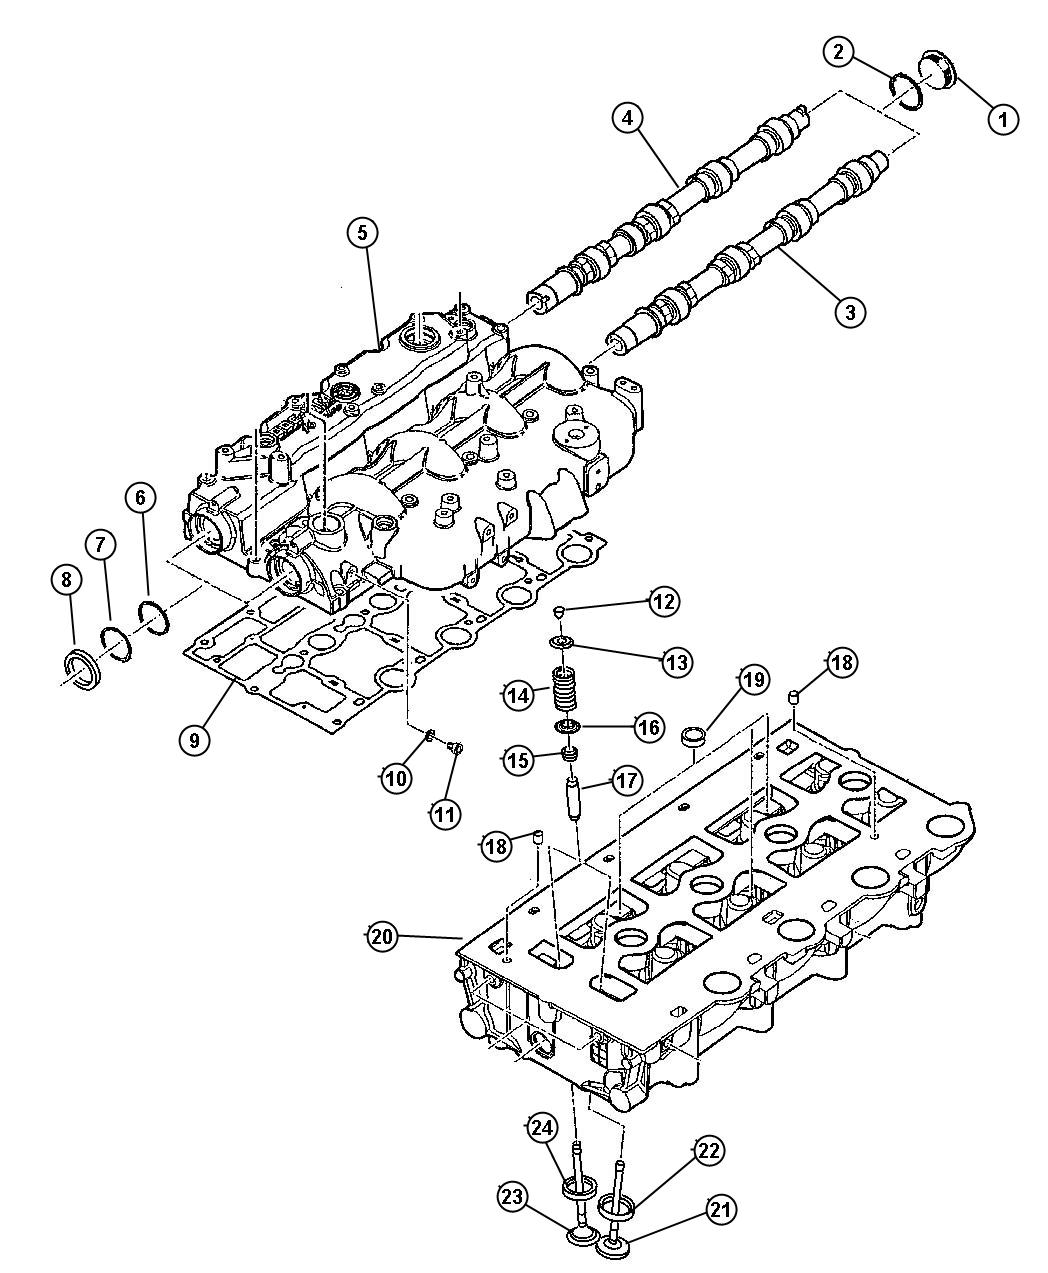 2005 Jeep Liberty Guide. Intake/exhaust Valve. Standard